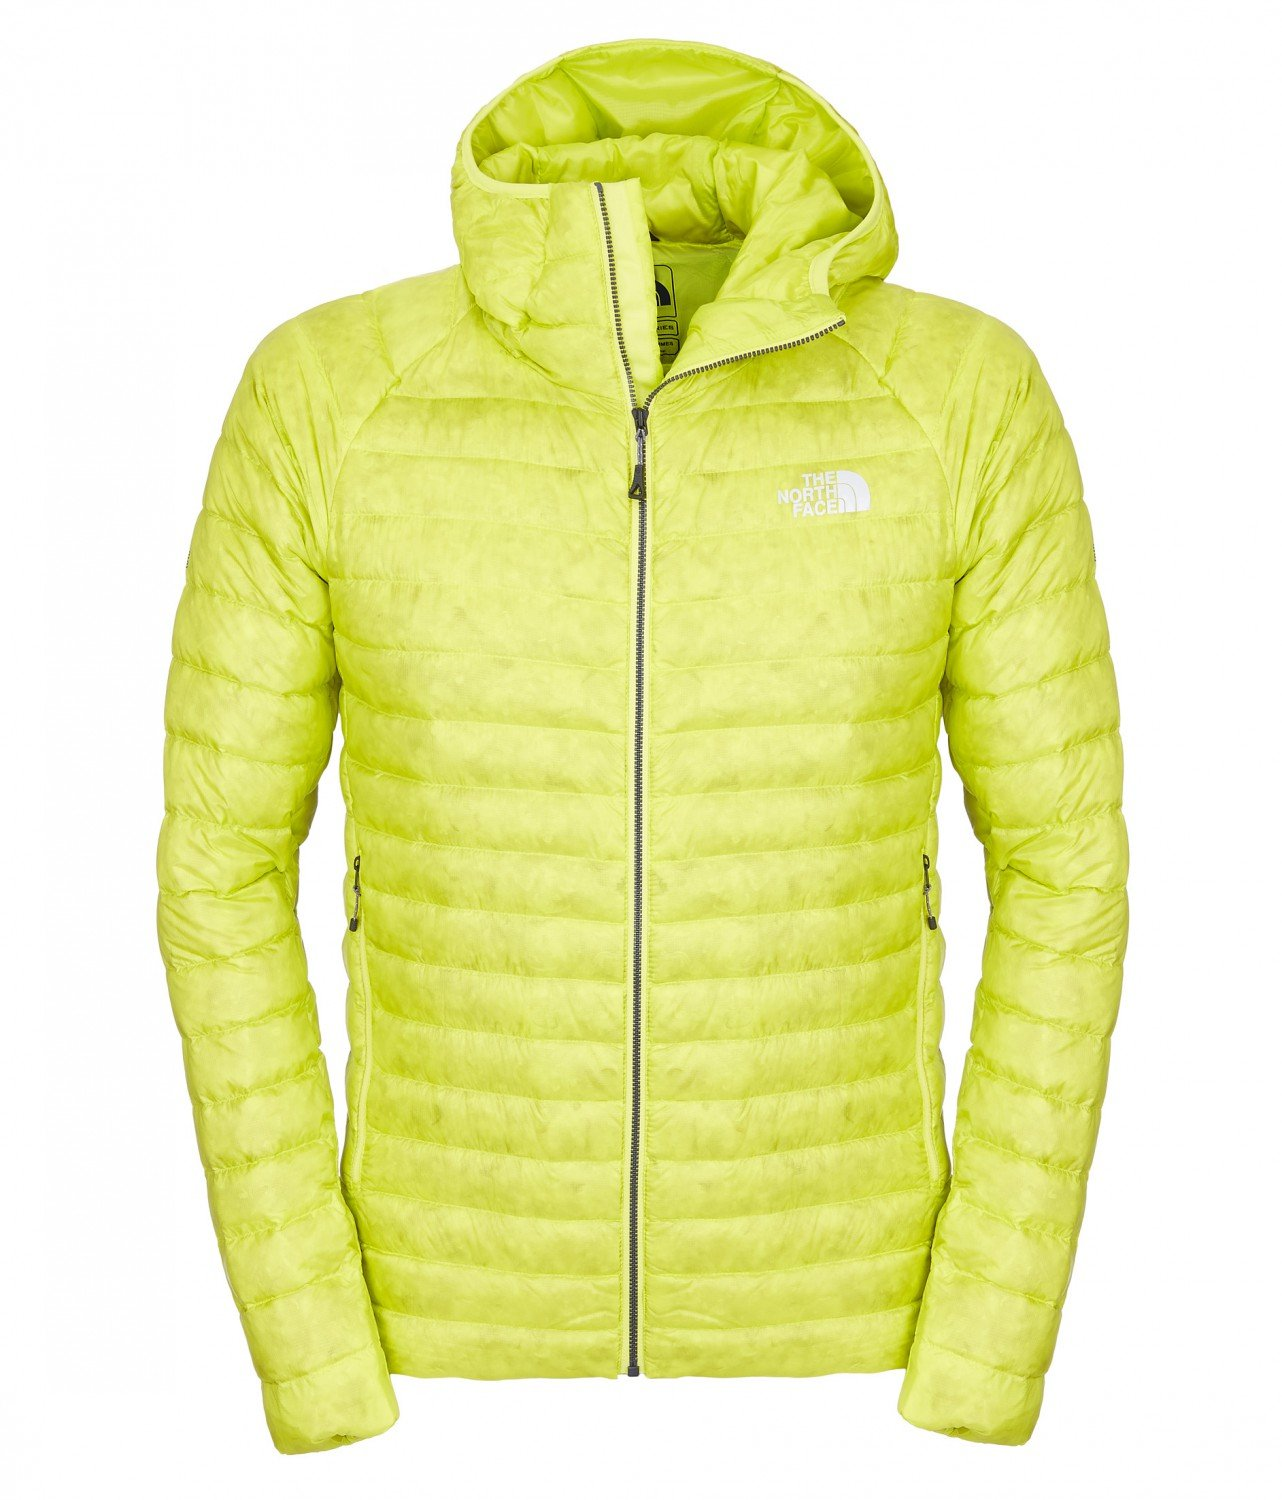 THE NORTH FACE Herren Jacke Quince Hooded